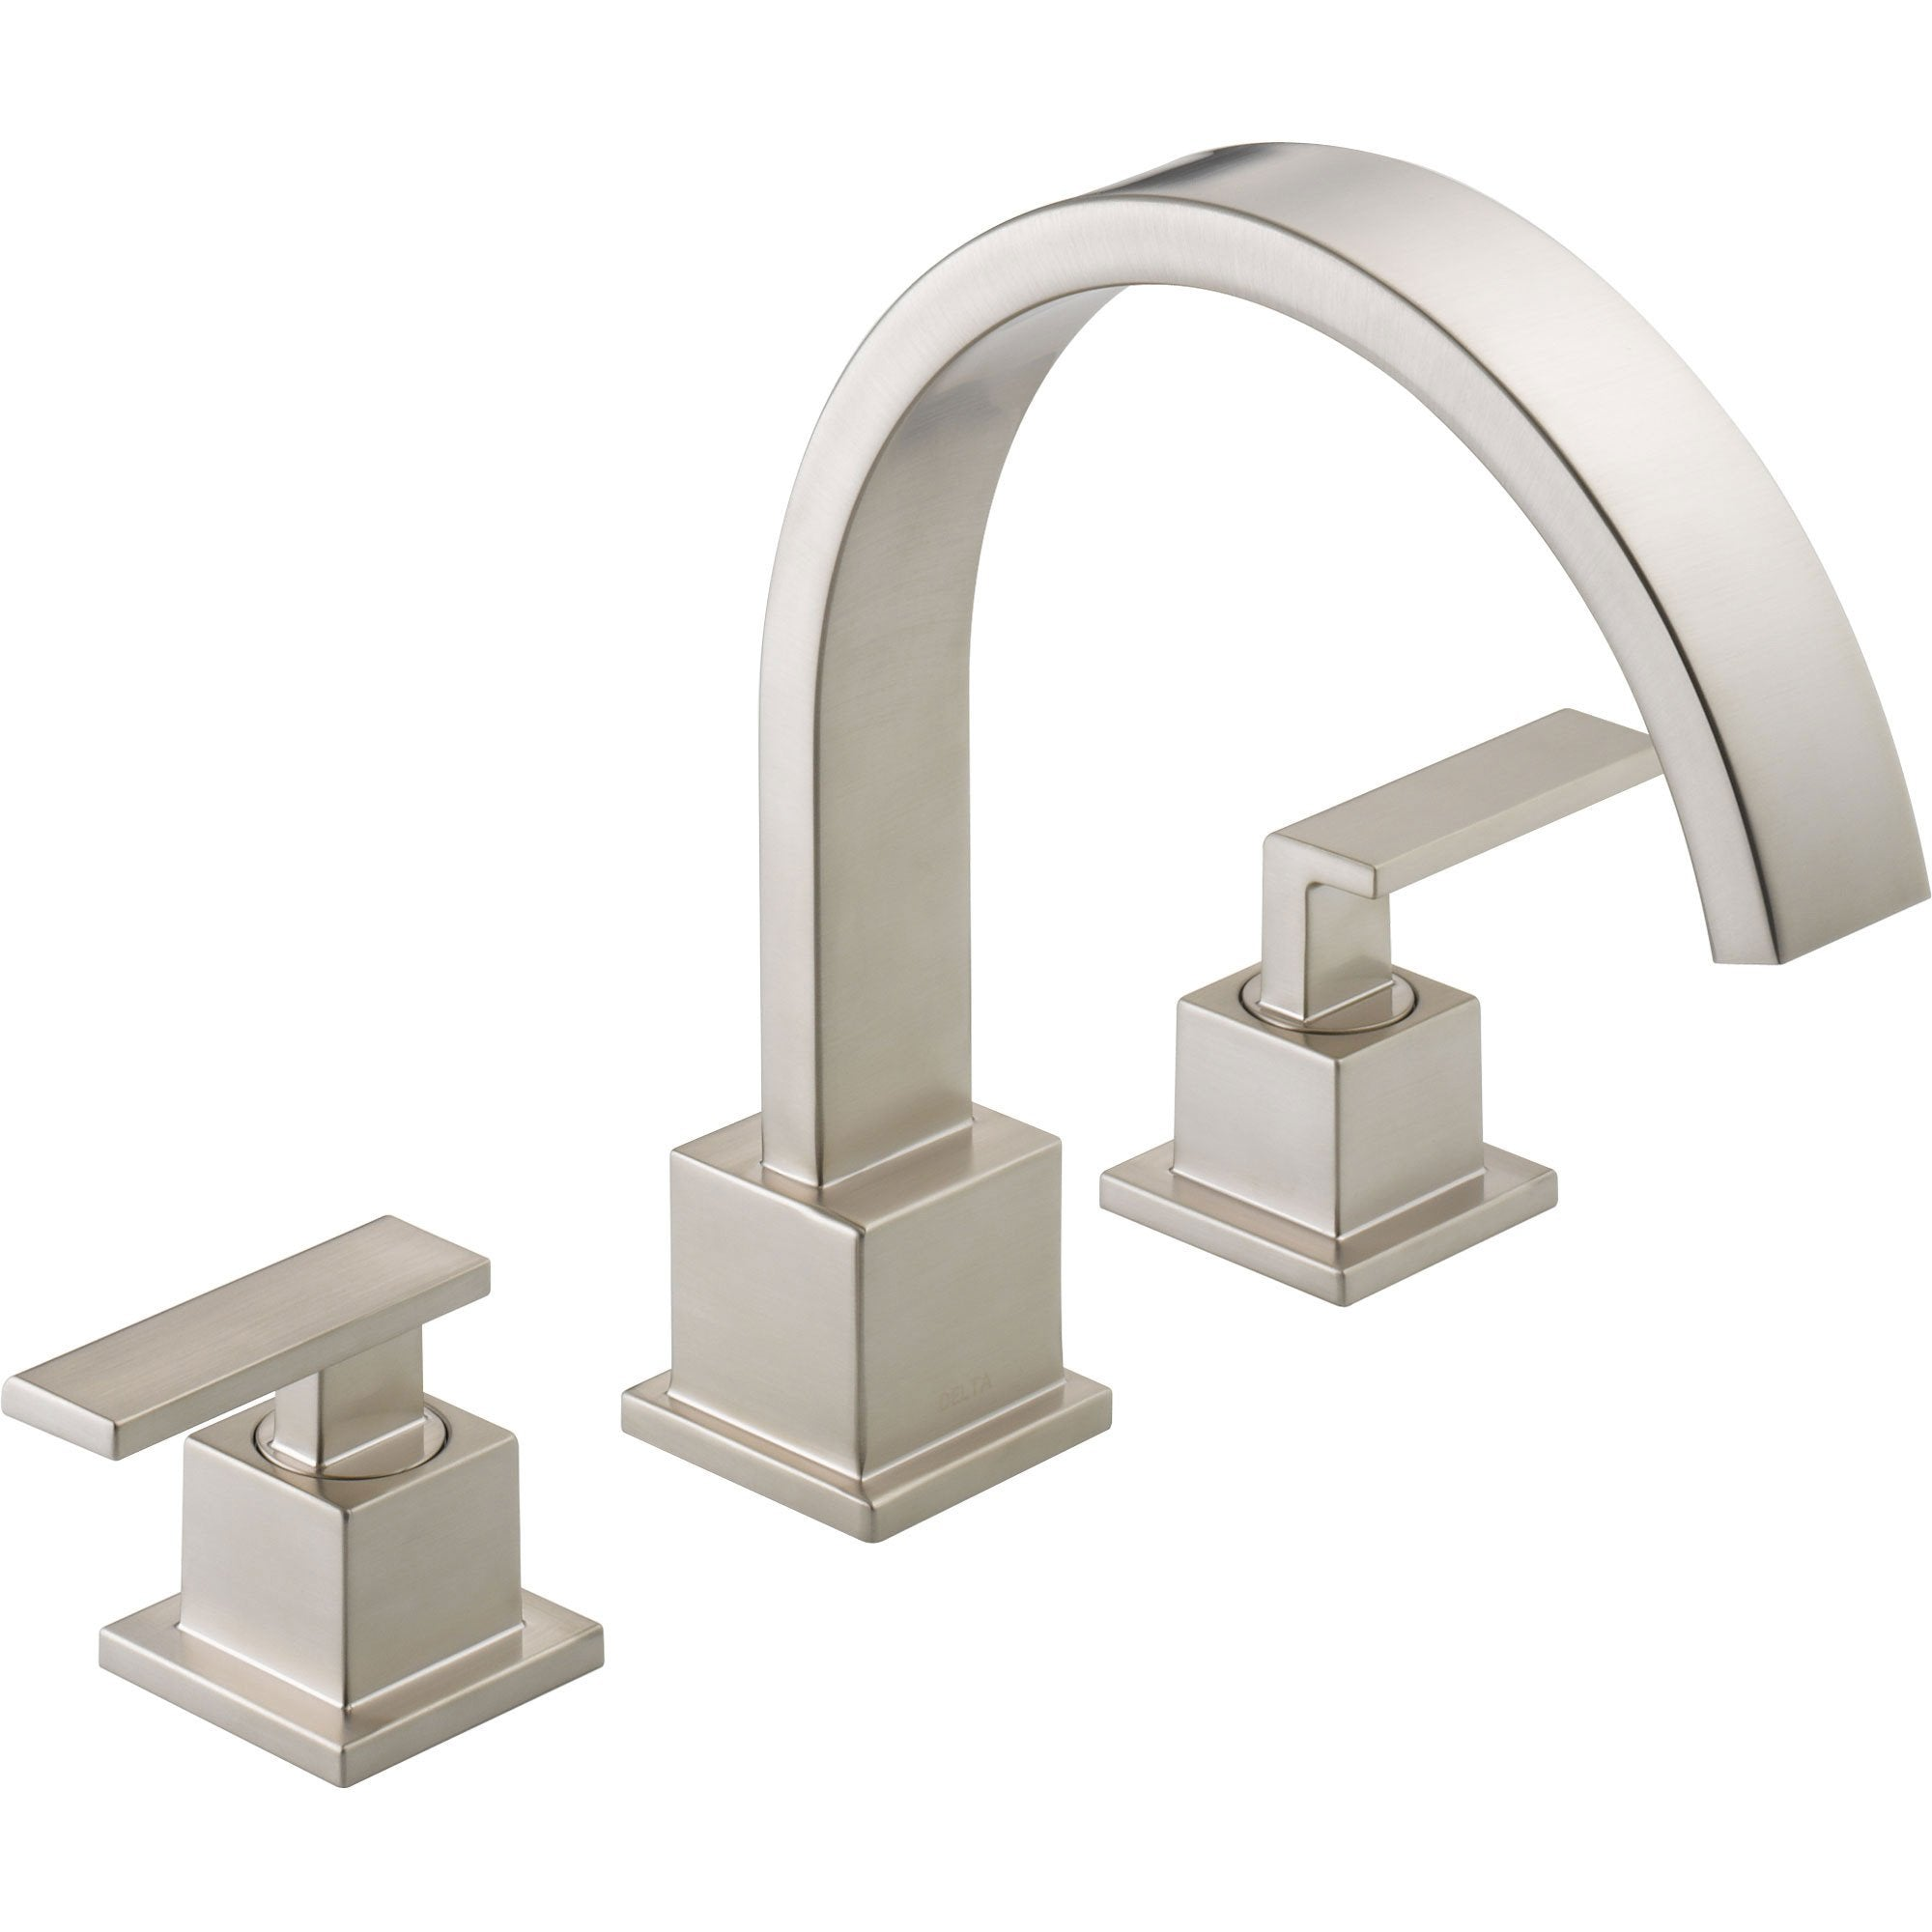 Delta Vero Modern Stainless Steel Finish Roman Tub Faucet with Valve D907V